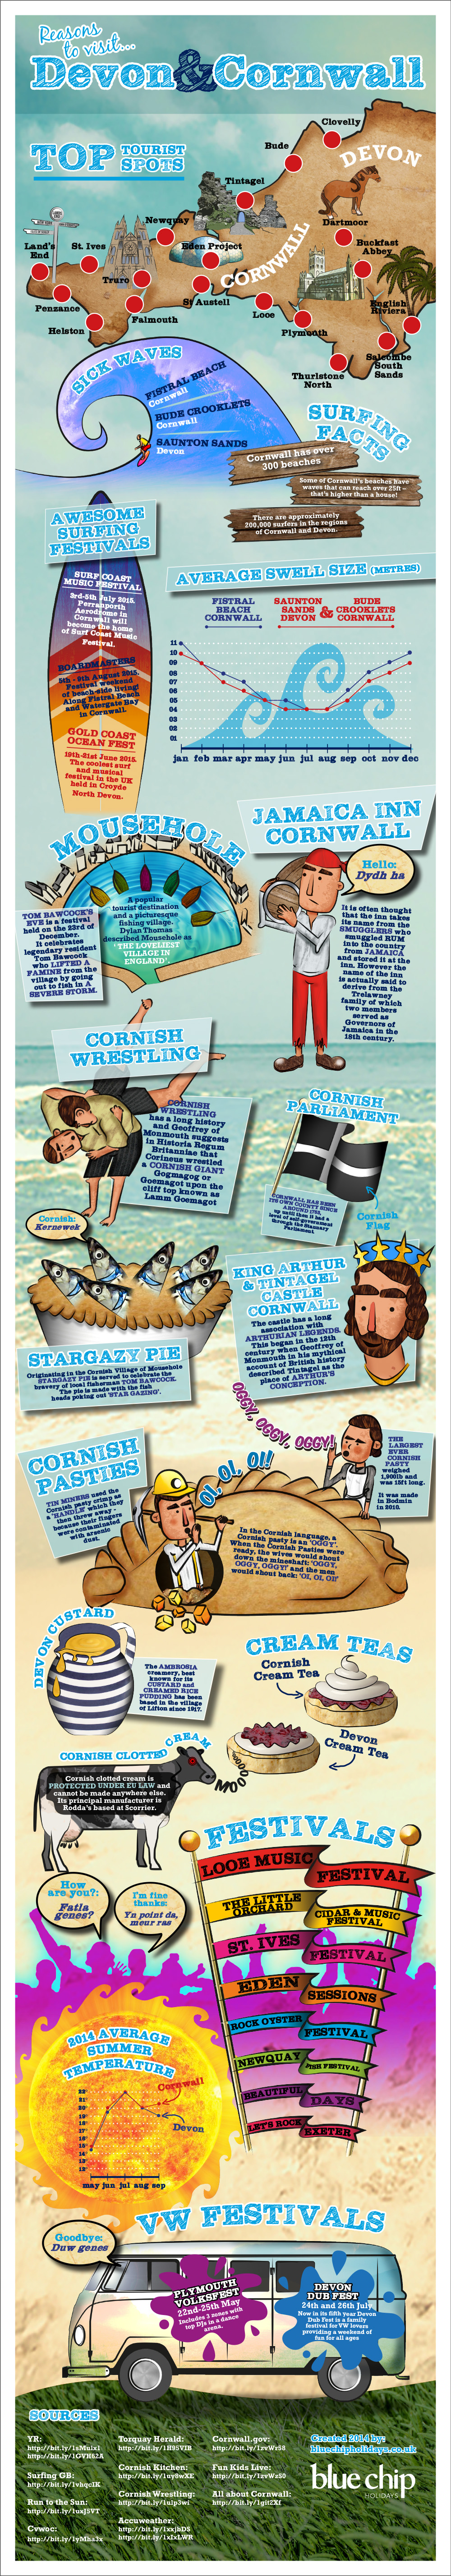 Reasons to visit Devon & Cornwall [Infographic]